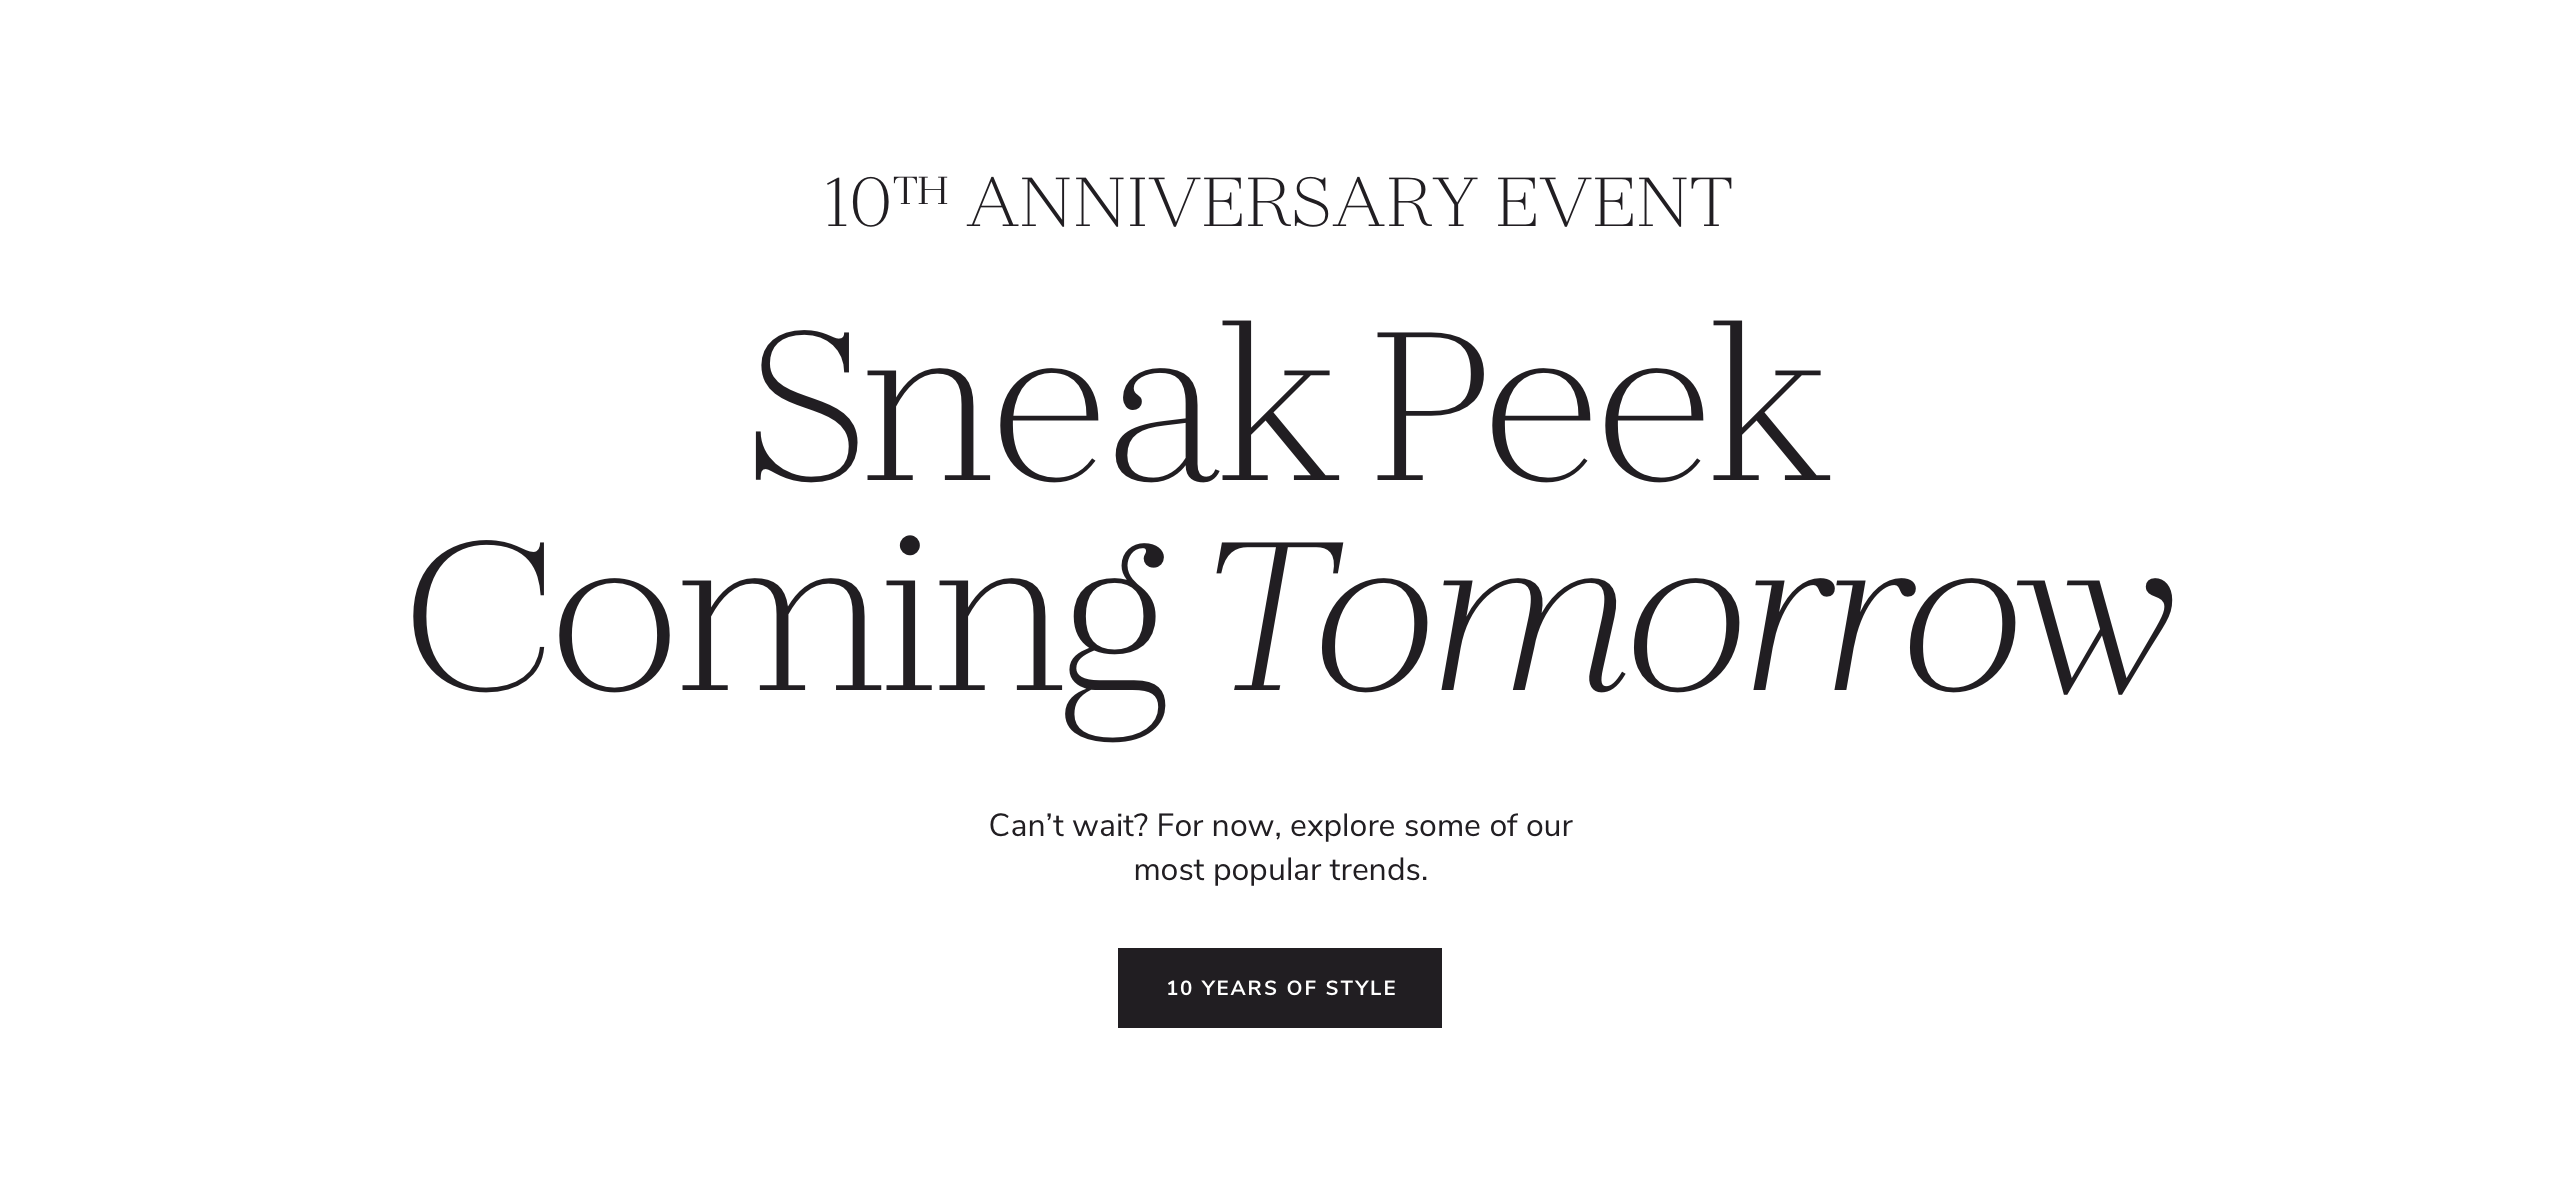 10th Anniversary Event. Sneak Peak Coming Tomorrow. Shop a selection of our favorite styles from the sale. Can't wait? For now, explore some of our most popular trends.